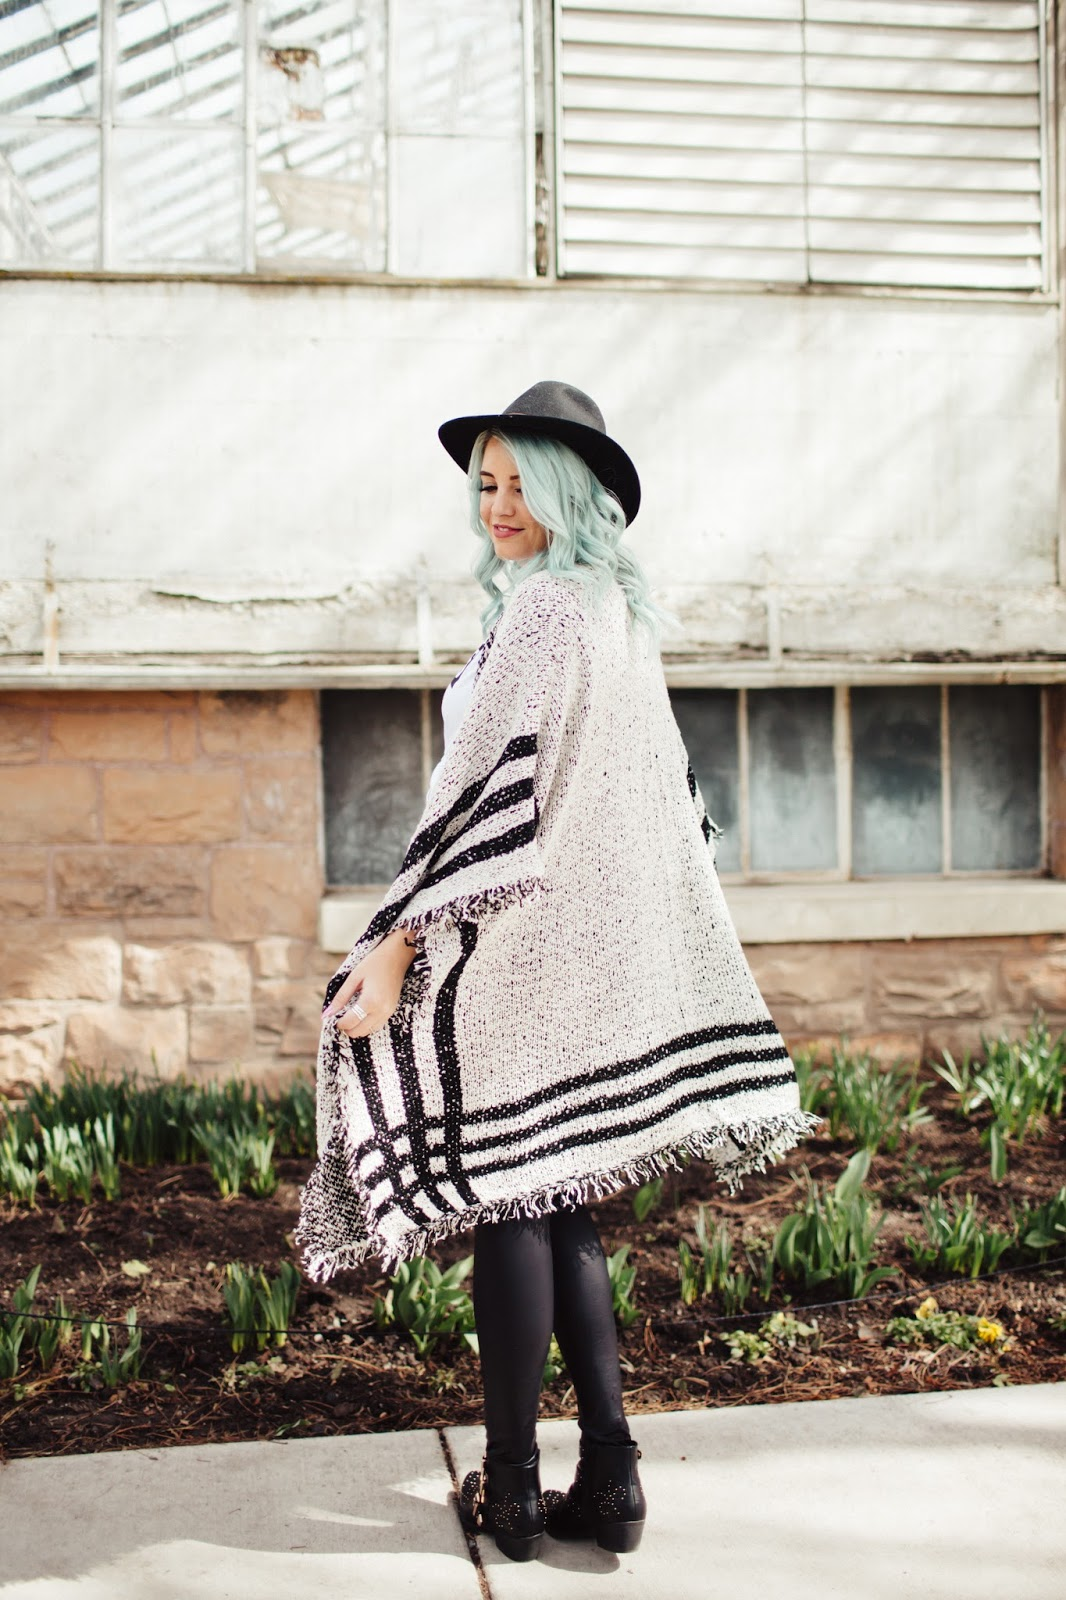 Cute Kimono, Cold style, Black and White